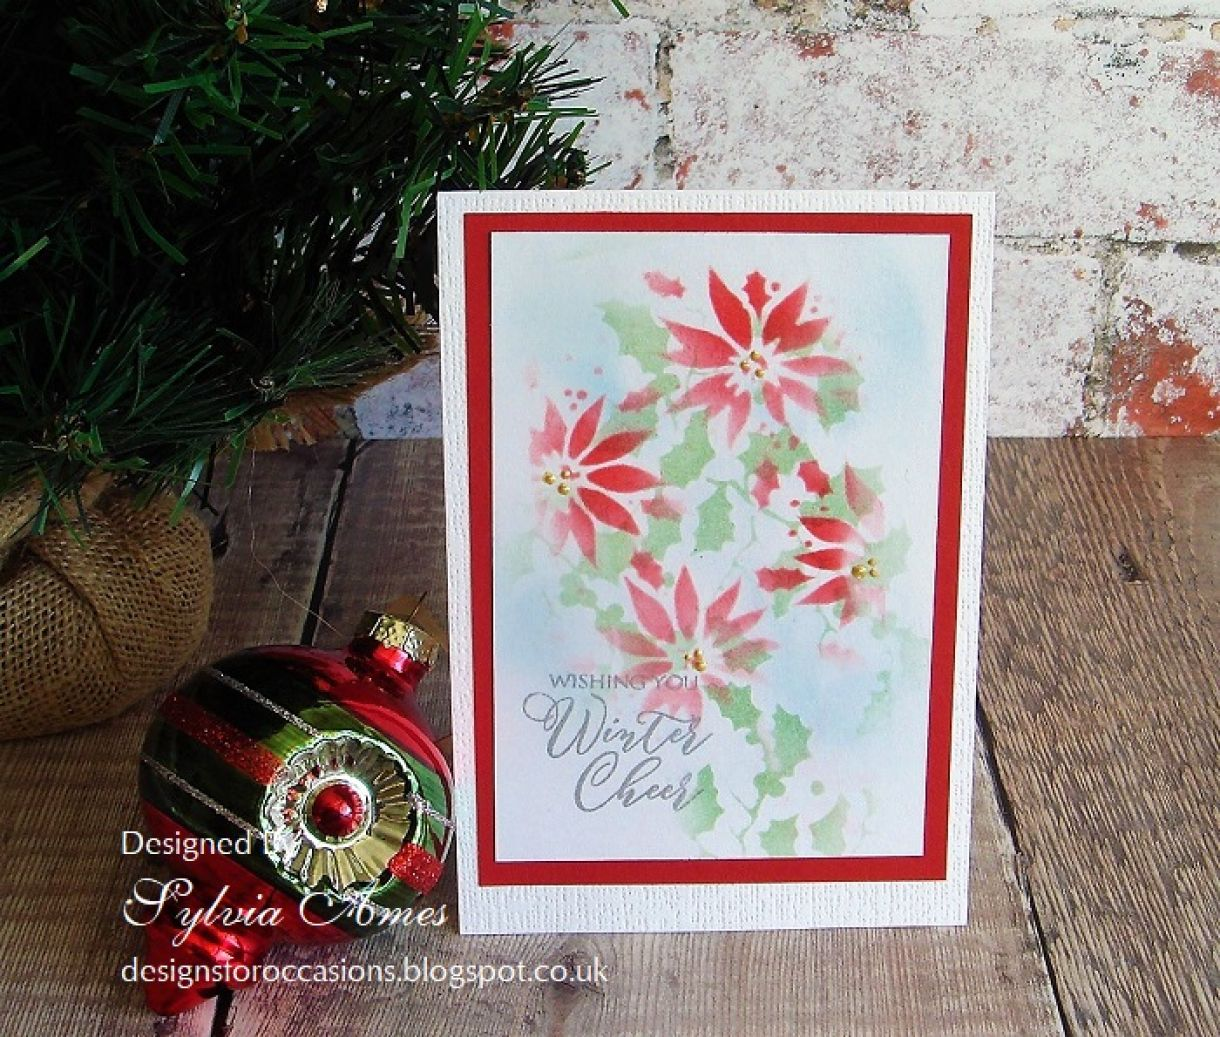 Water Colour Effect Pointsettias Quick Card 6